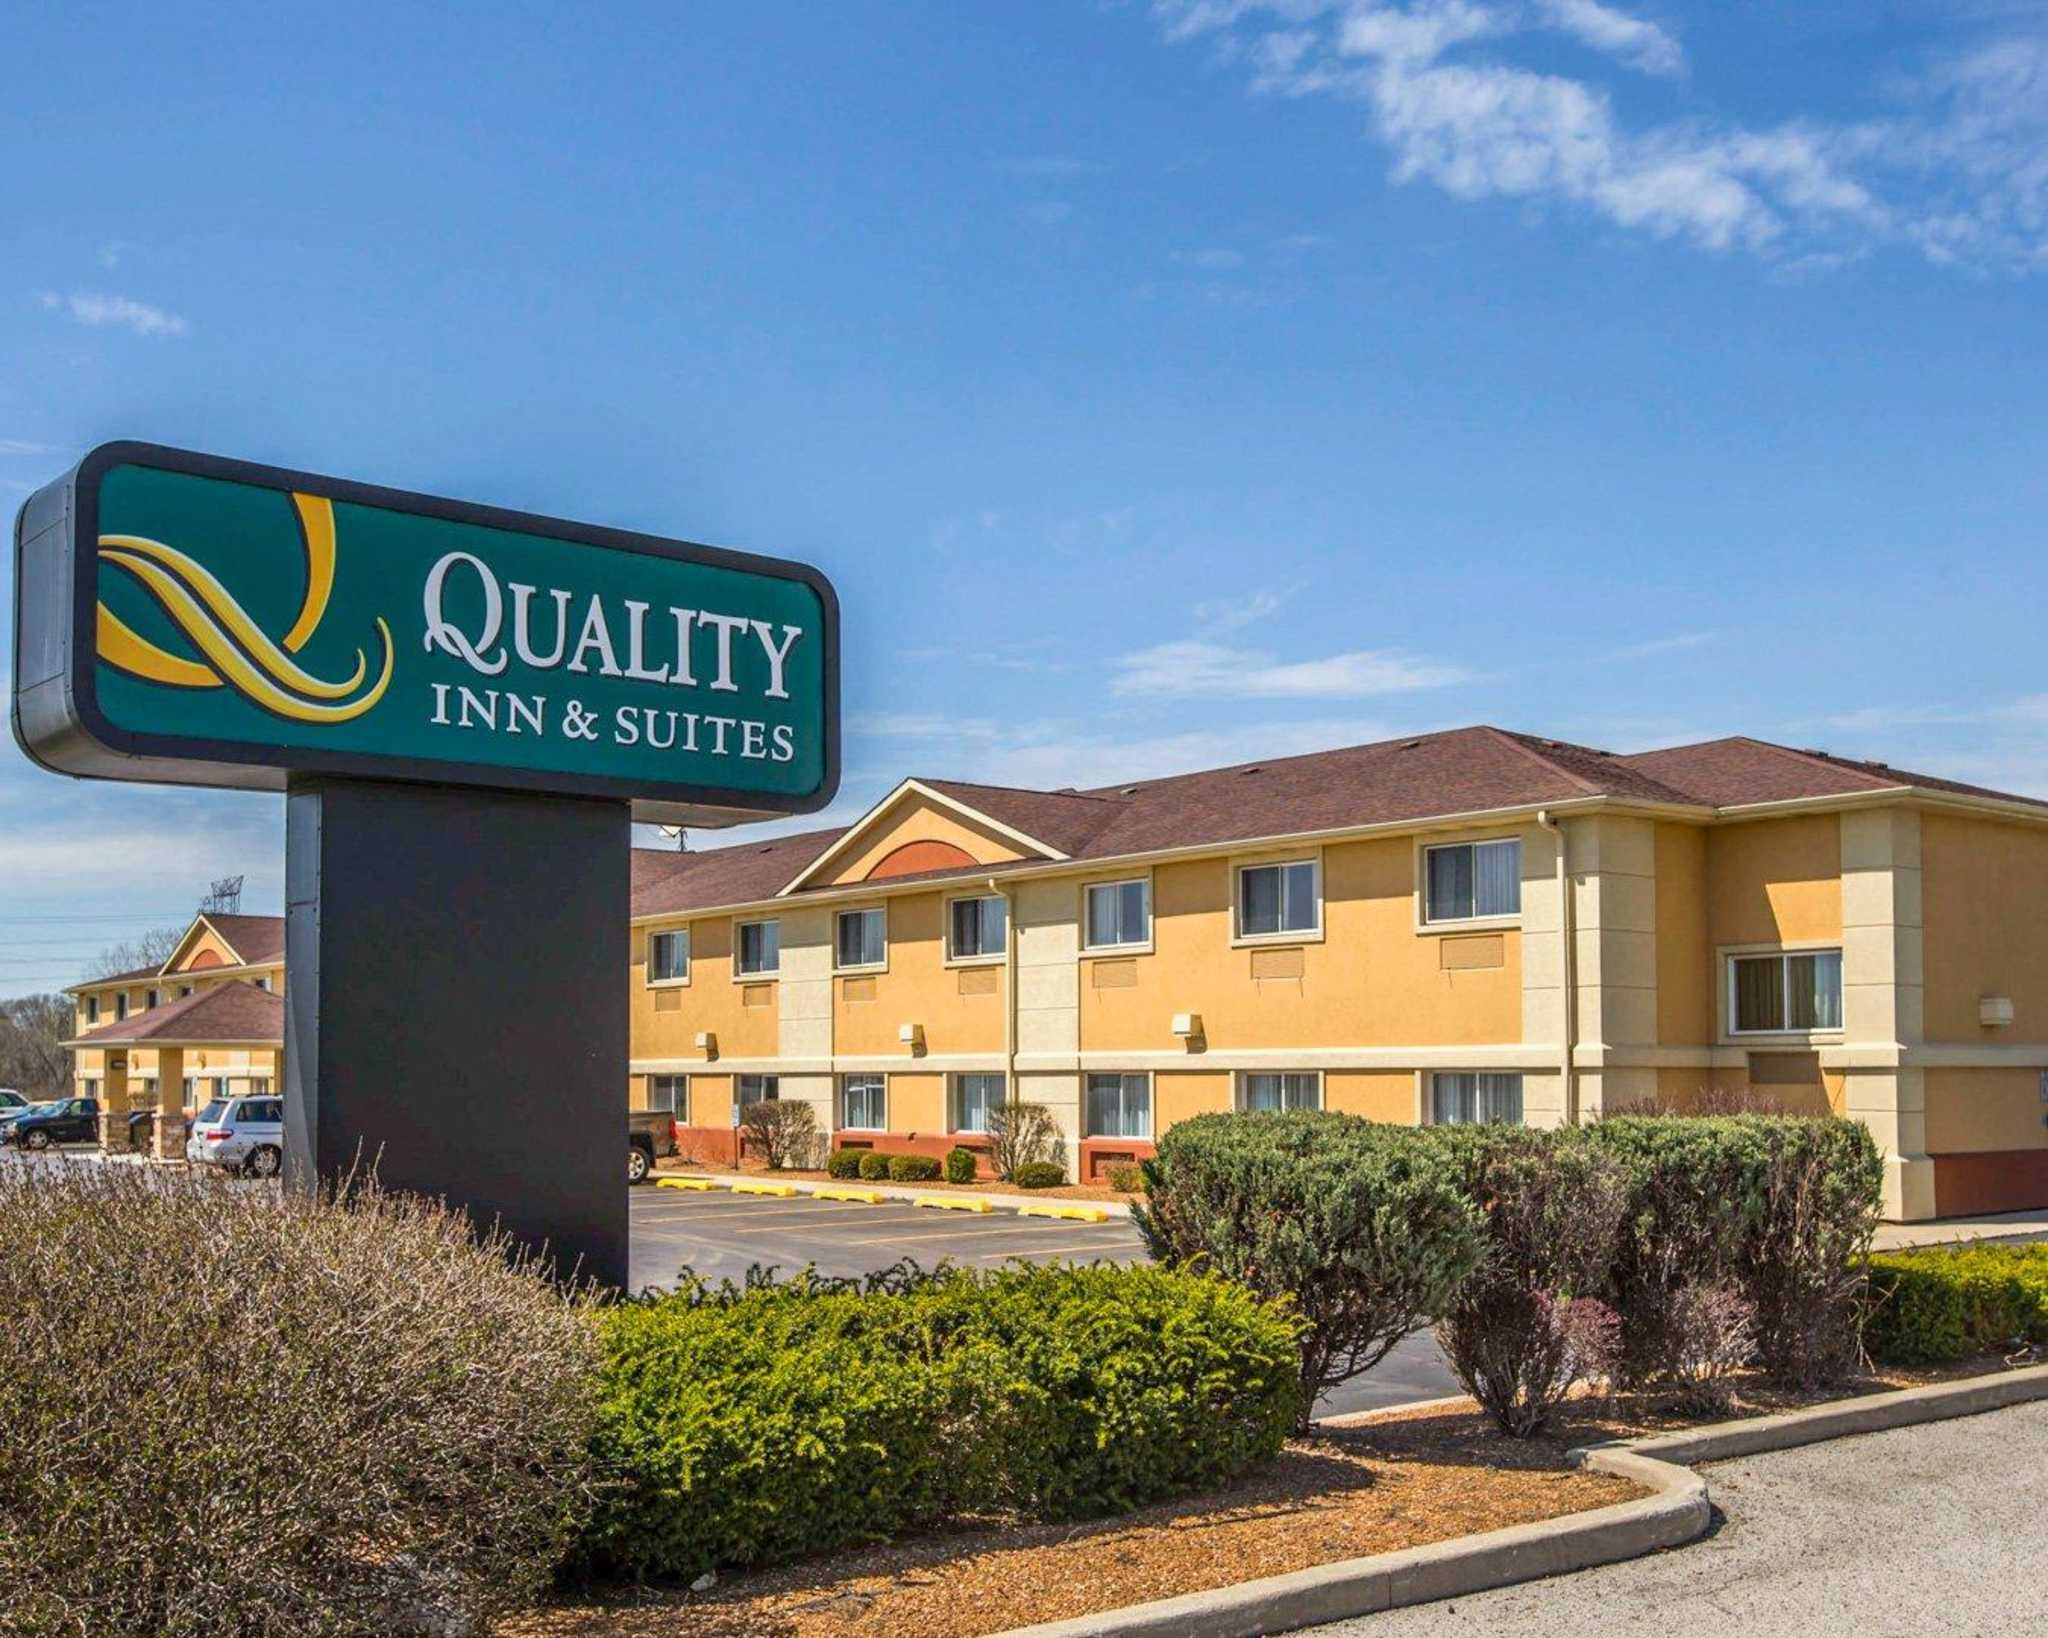 Quality inn suites south hotel joliet il 60436 for Quality hotel